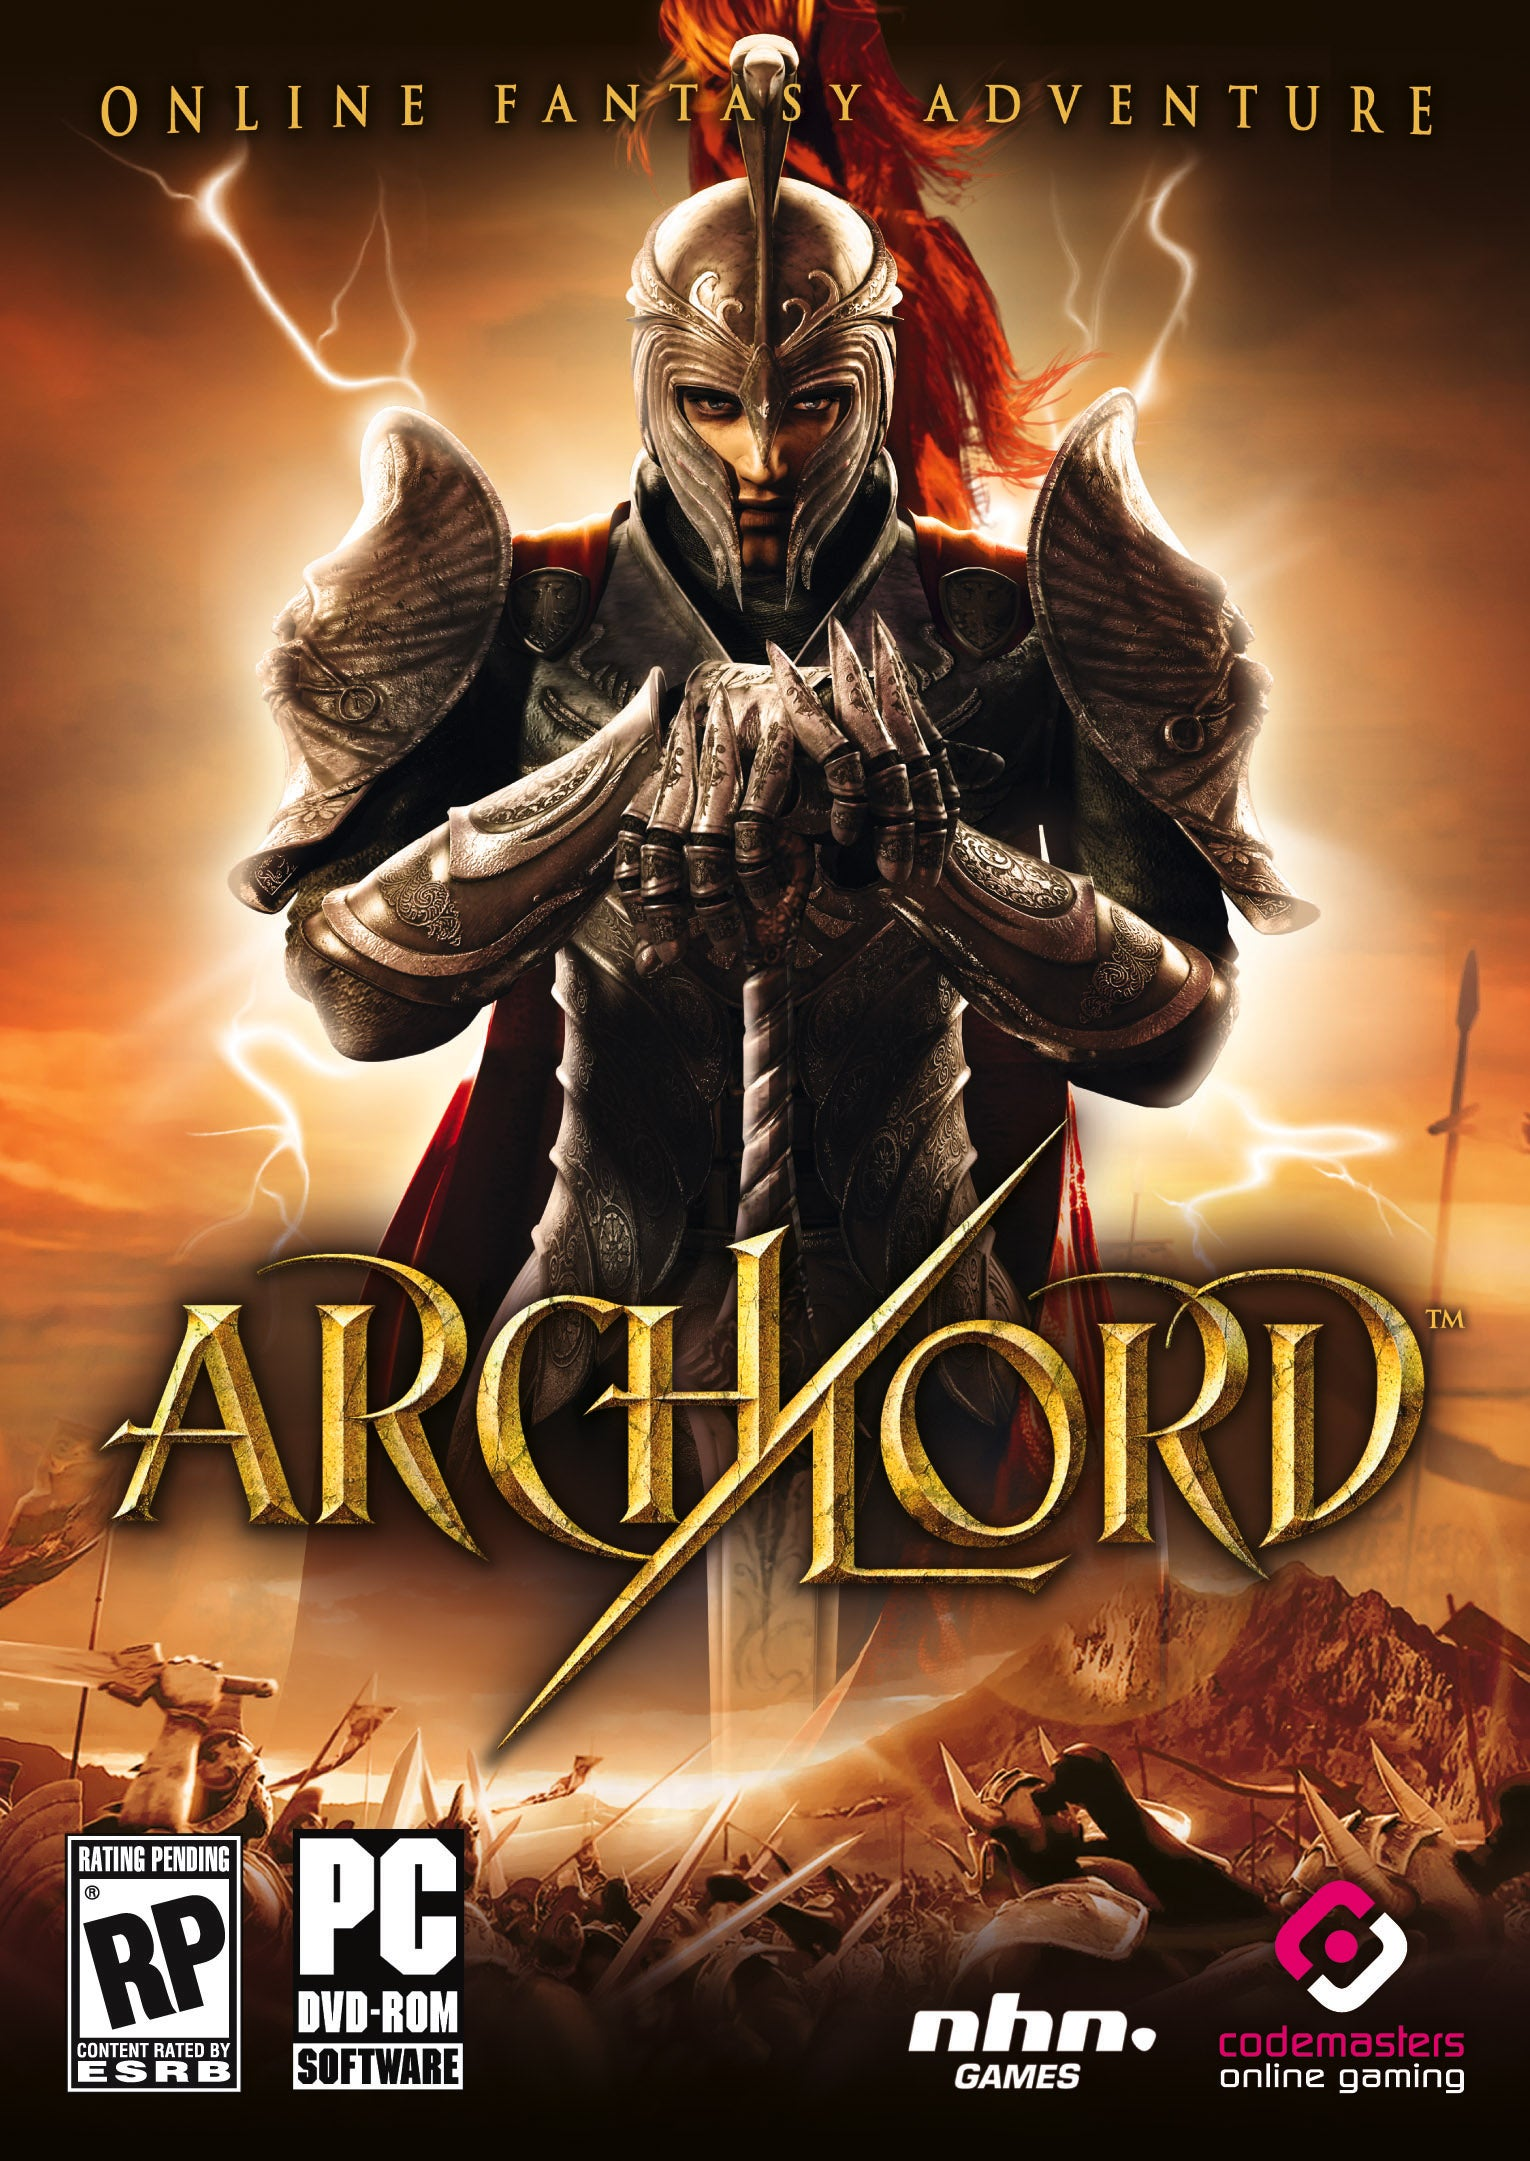 ArchLord PC IGN